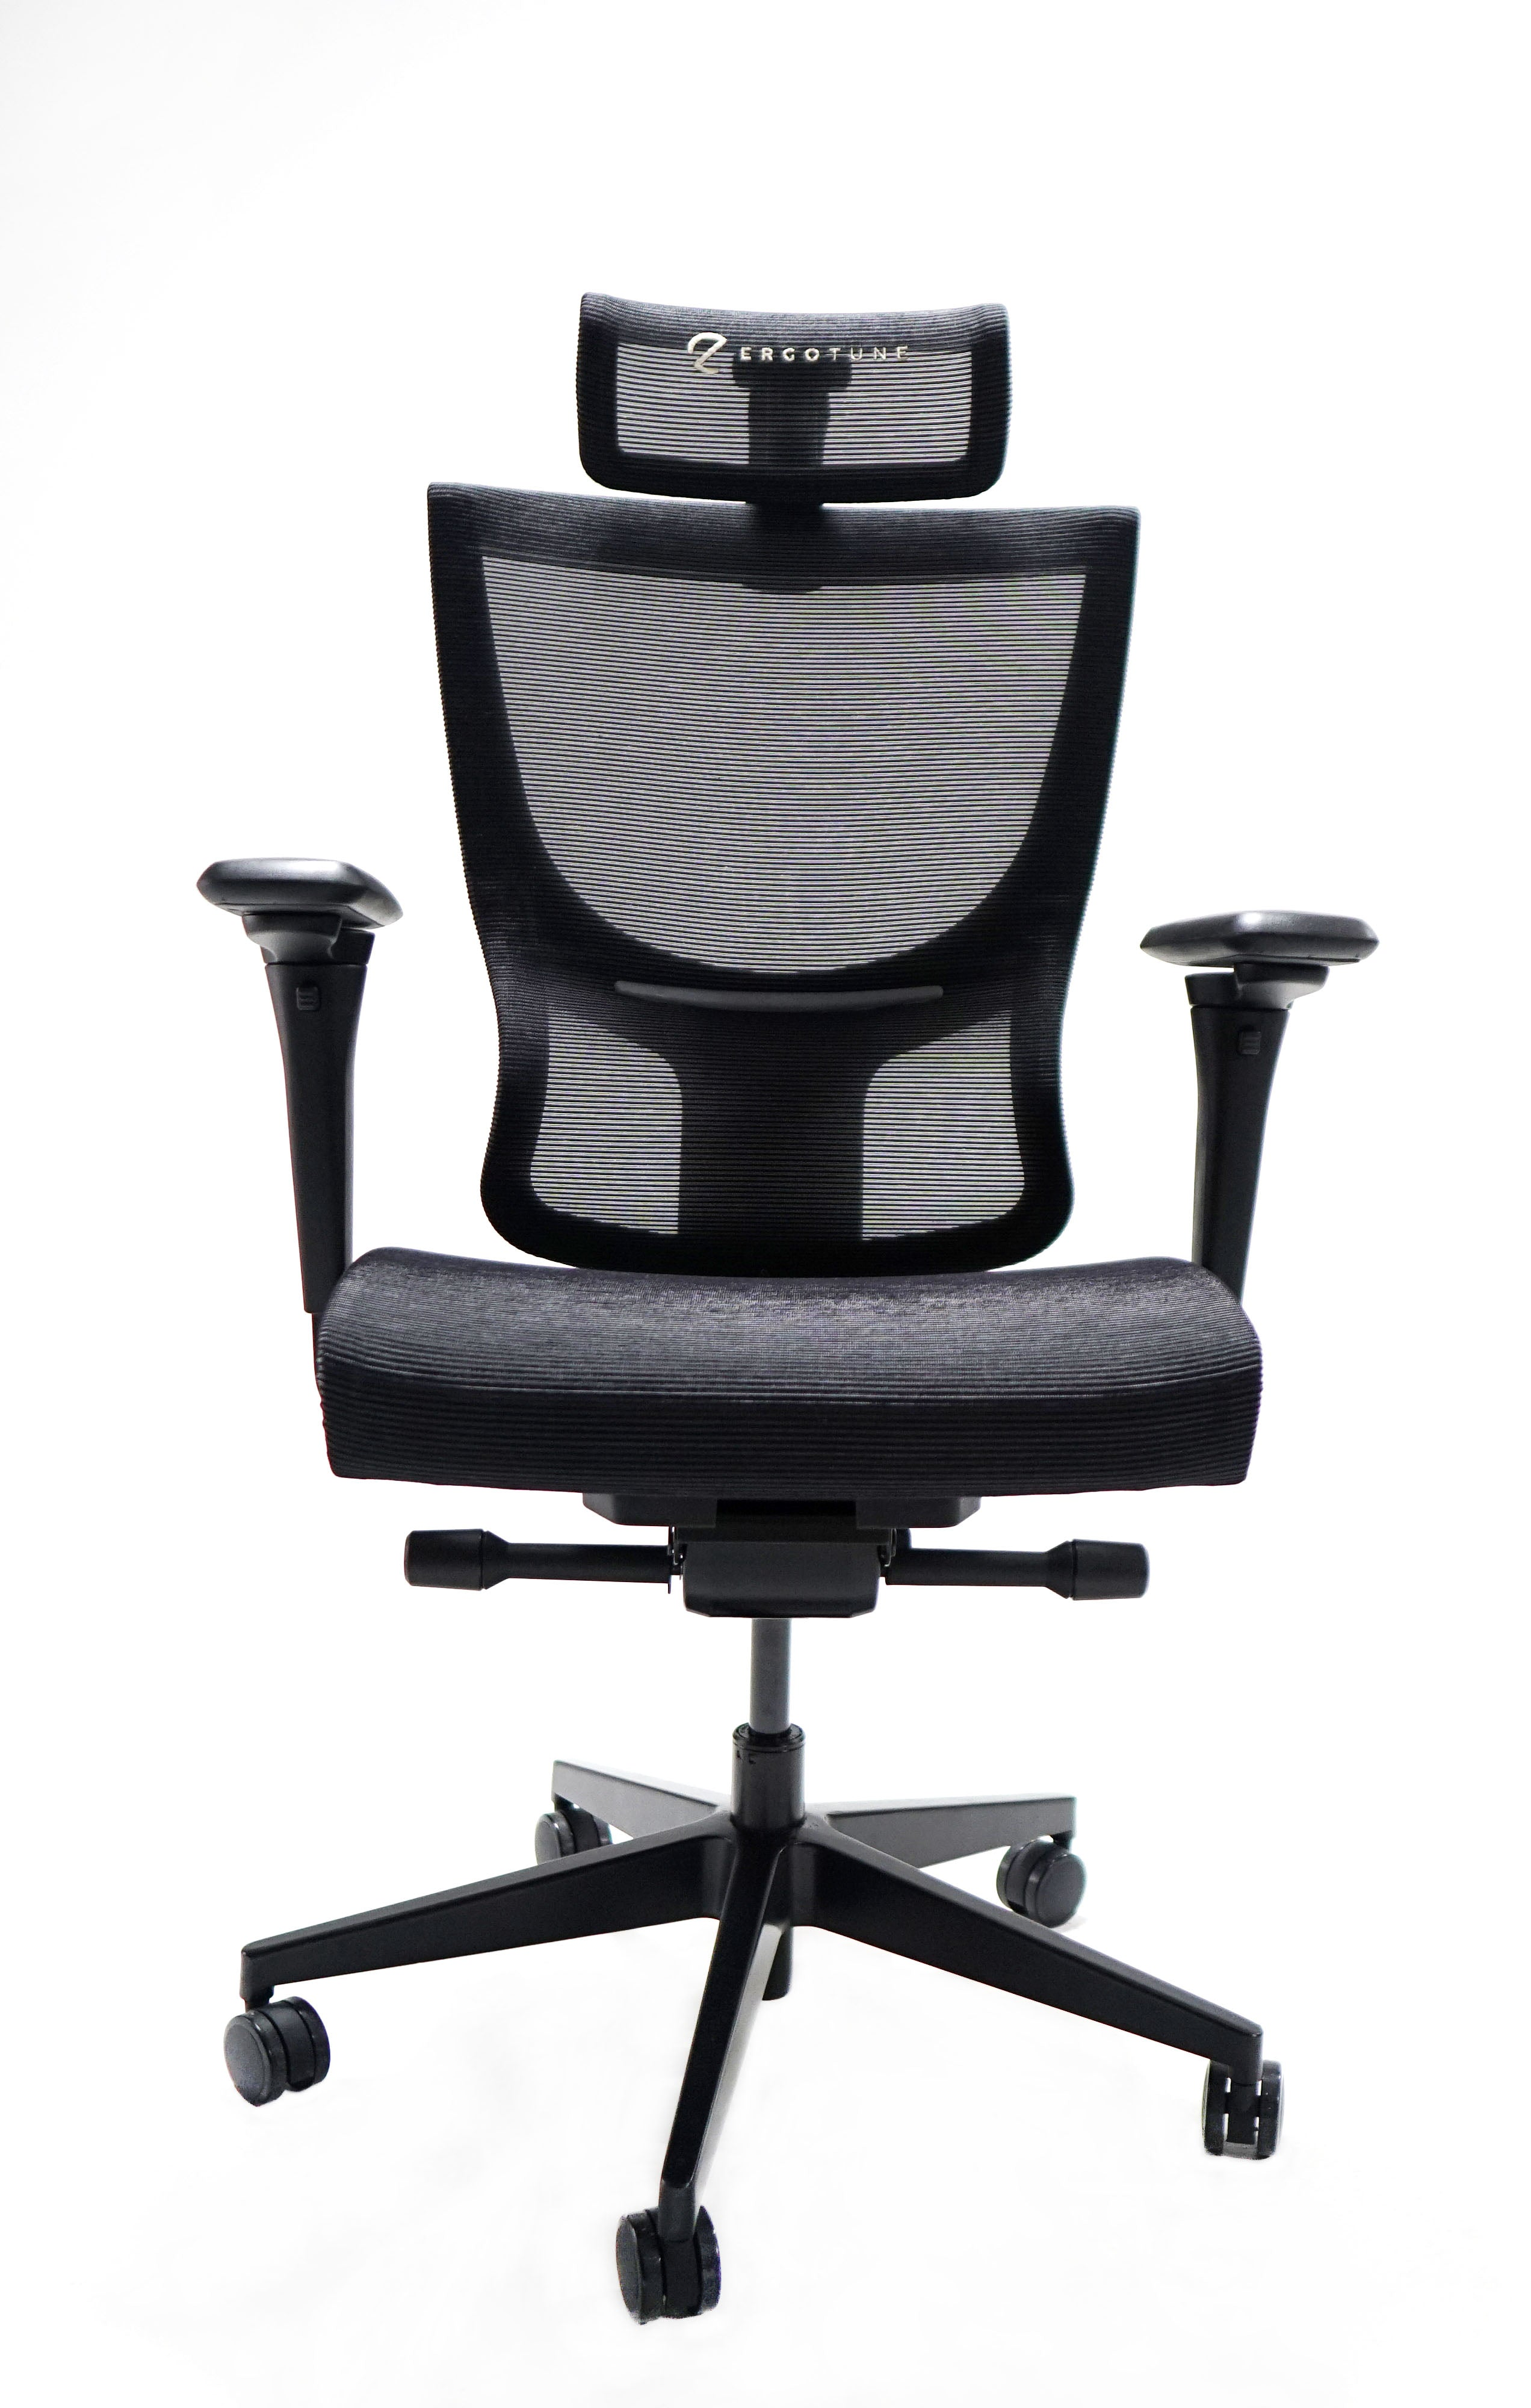 Fabric-mesh hybrid office chairs